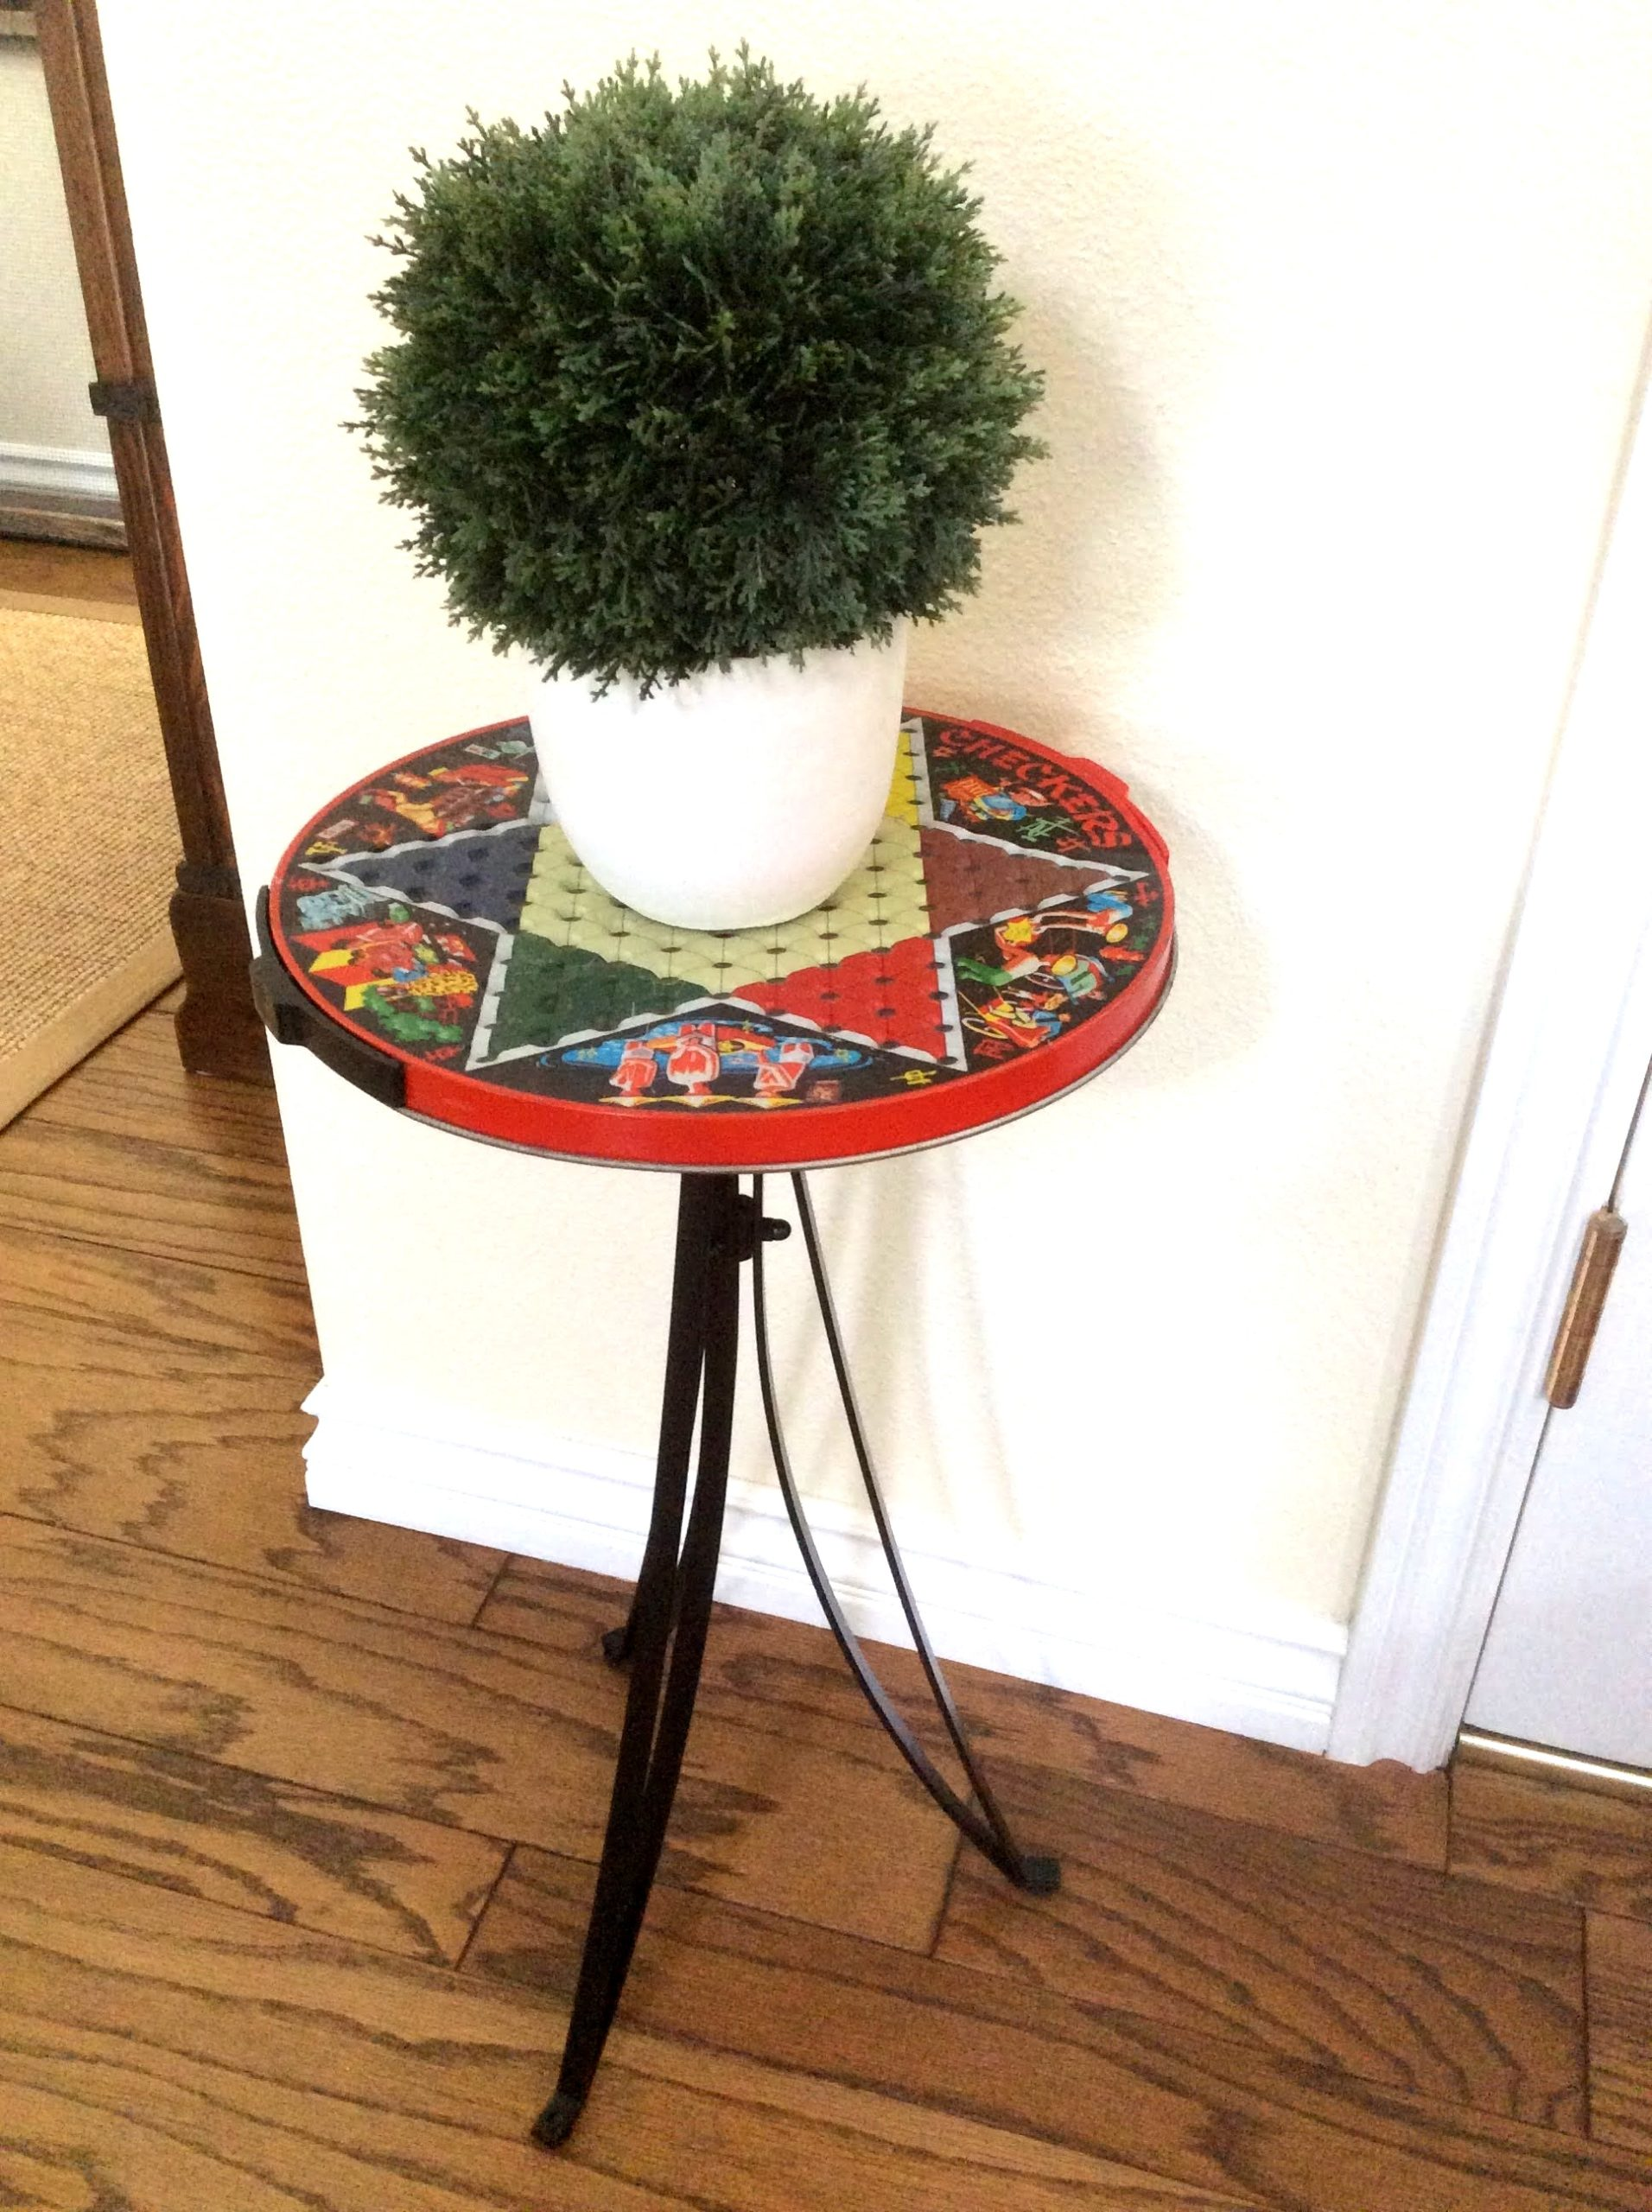 Chinese checkers game board table by Fresh Vintage By Lisa S, featured on DIY Salvaged Junk Projects 569 on Funky Junk!